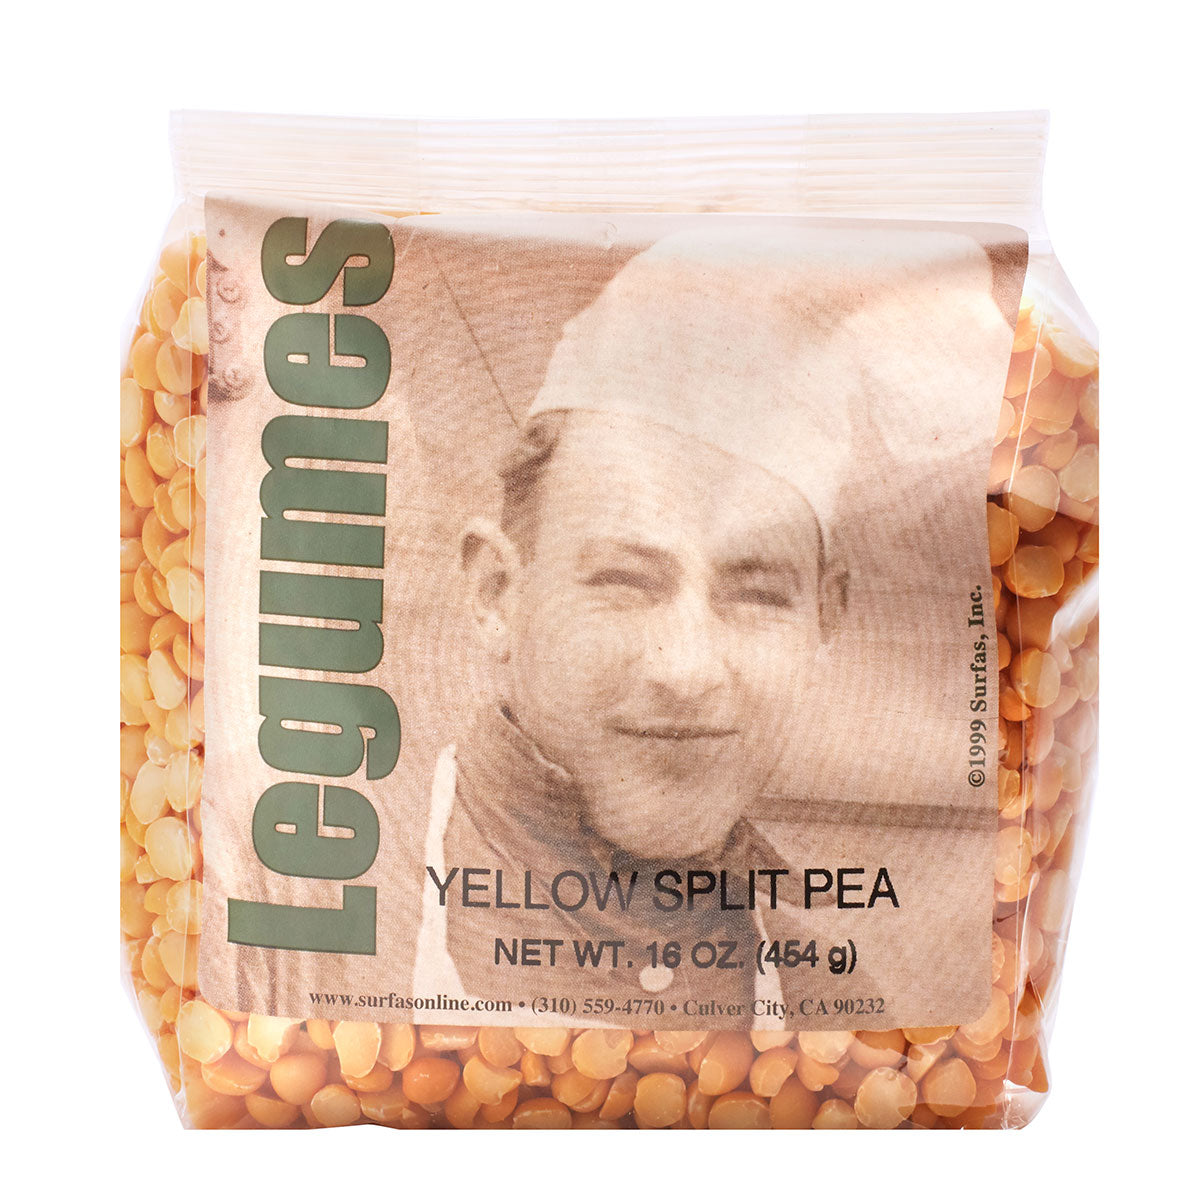 Pea Yellow Split 1lb